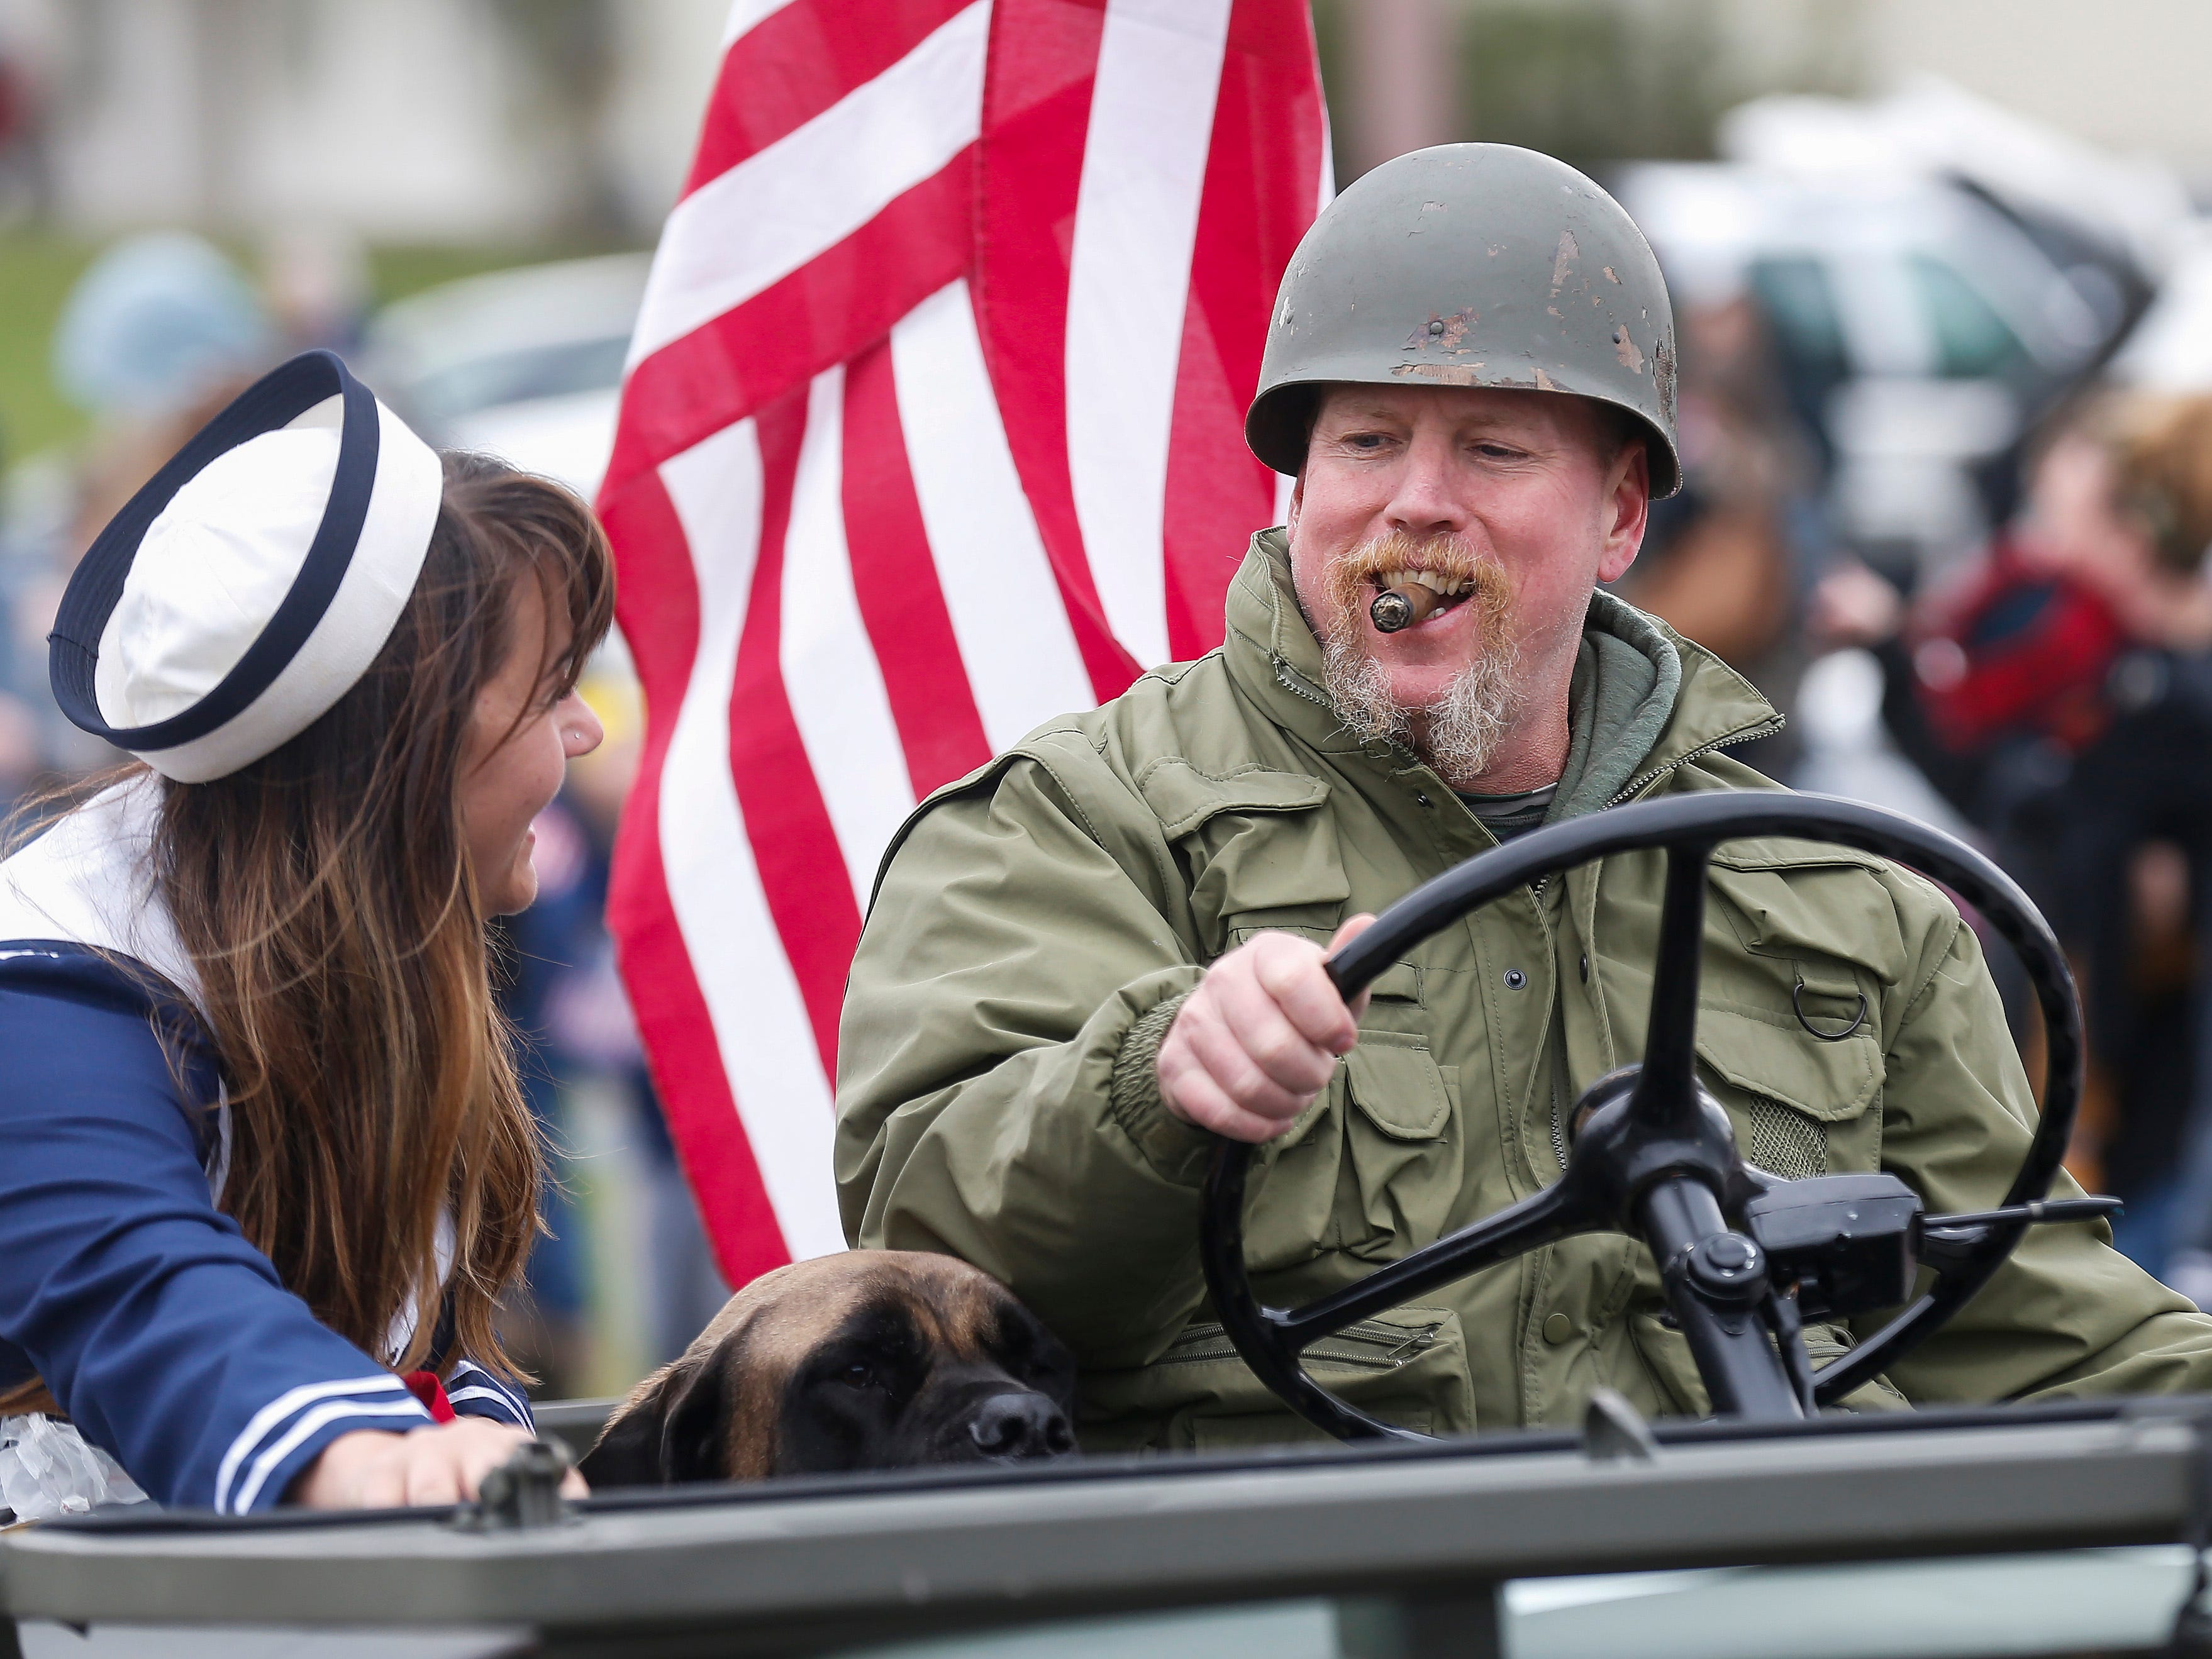 Hundreds of people lined East Jackson Street in Willard for the 2nd Annual Western Greene County Veterans Day Parade on Saturday, Nov. 3, 2018.